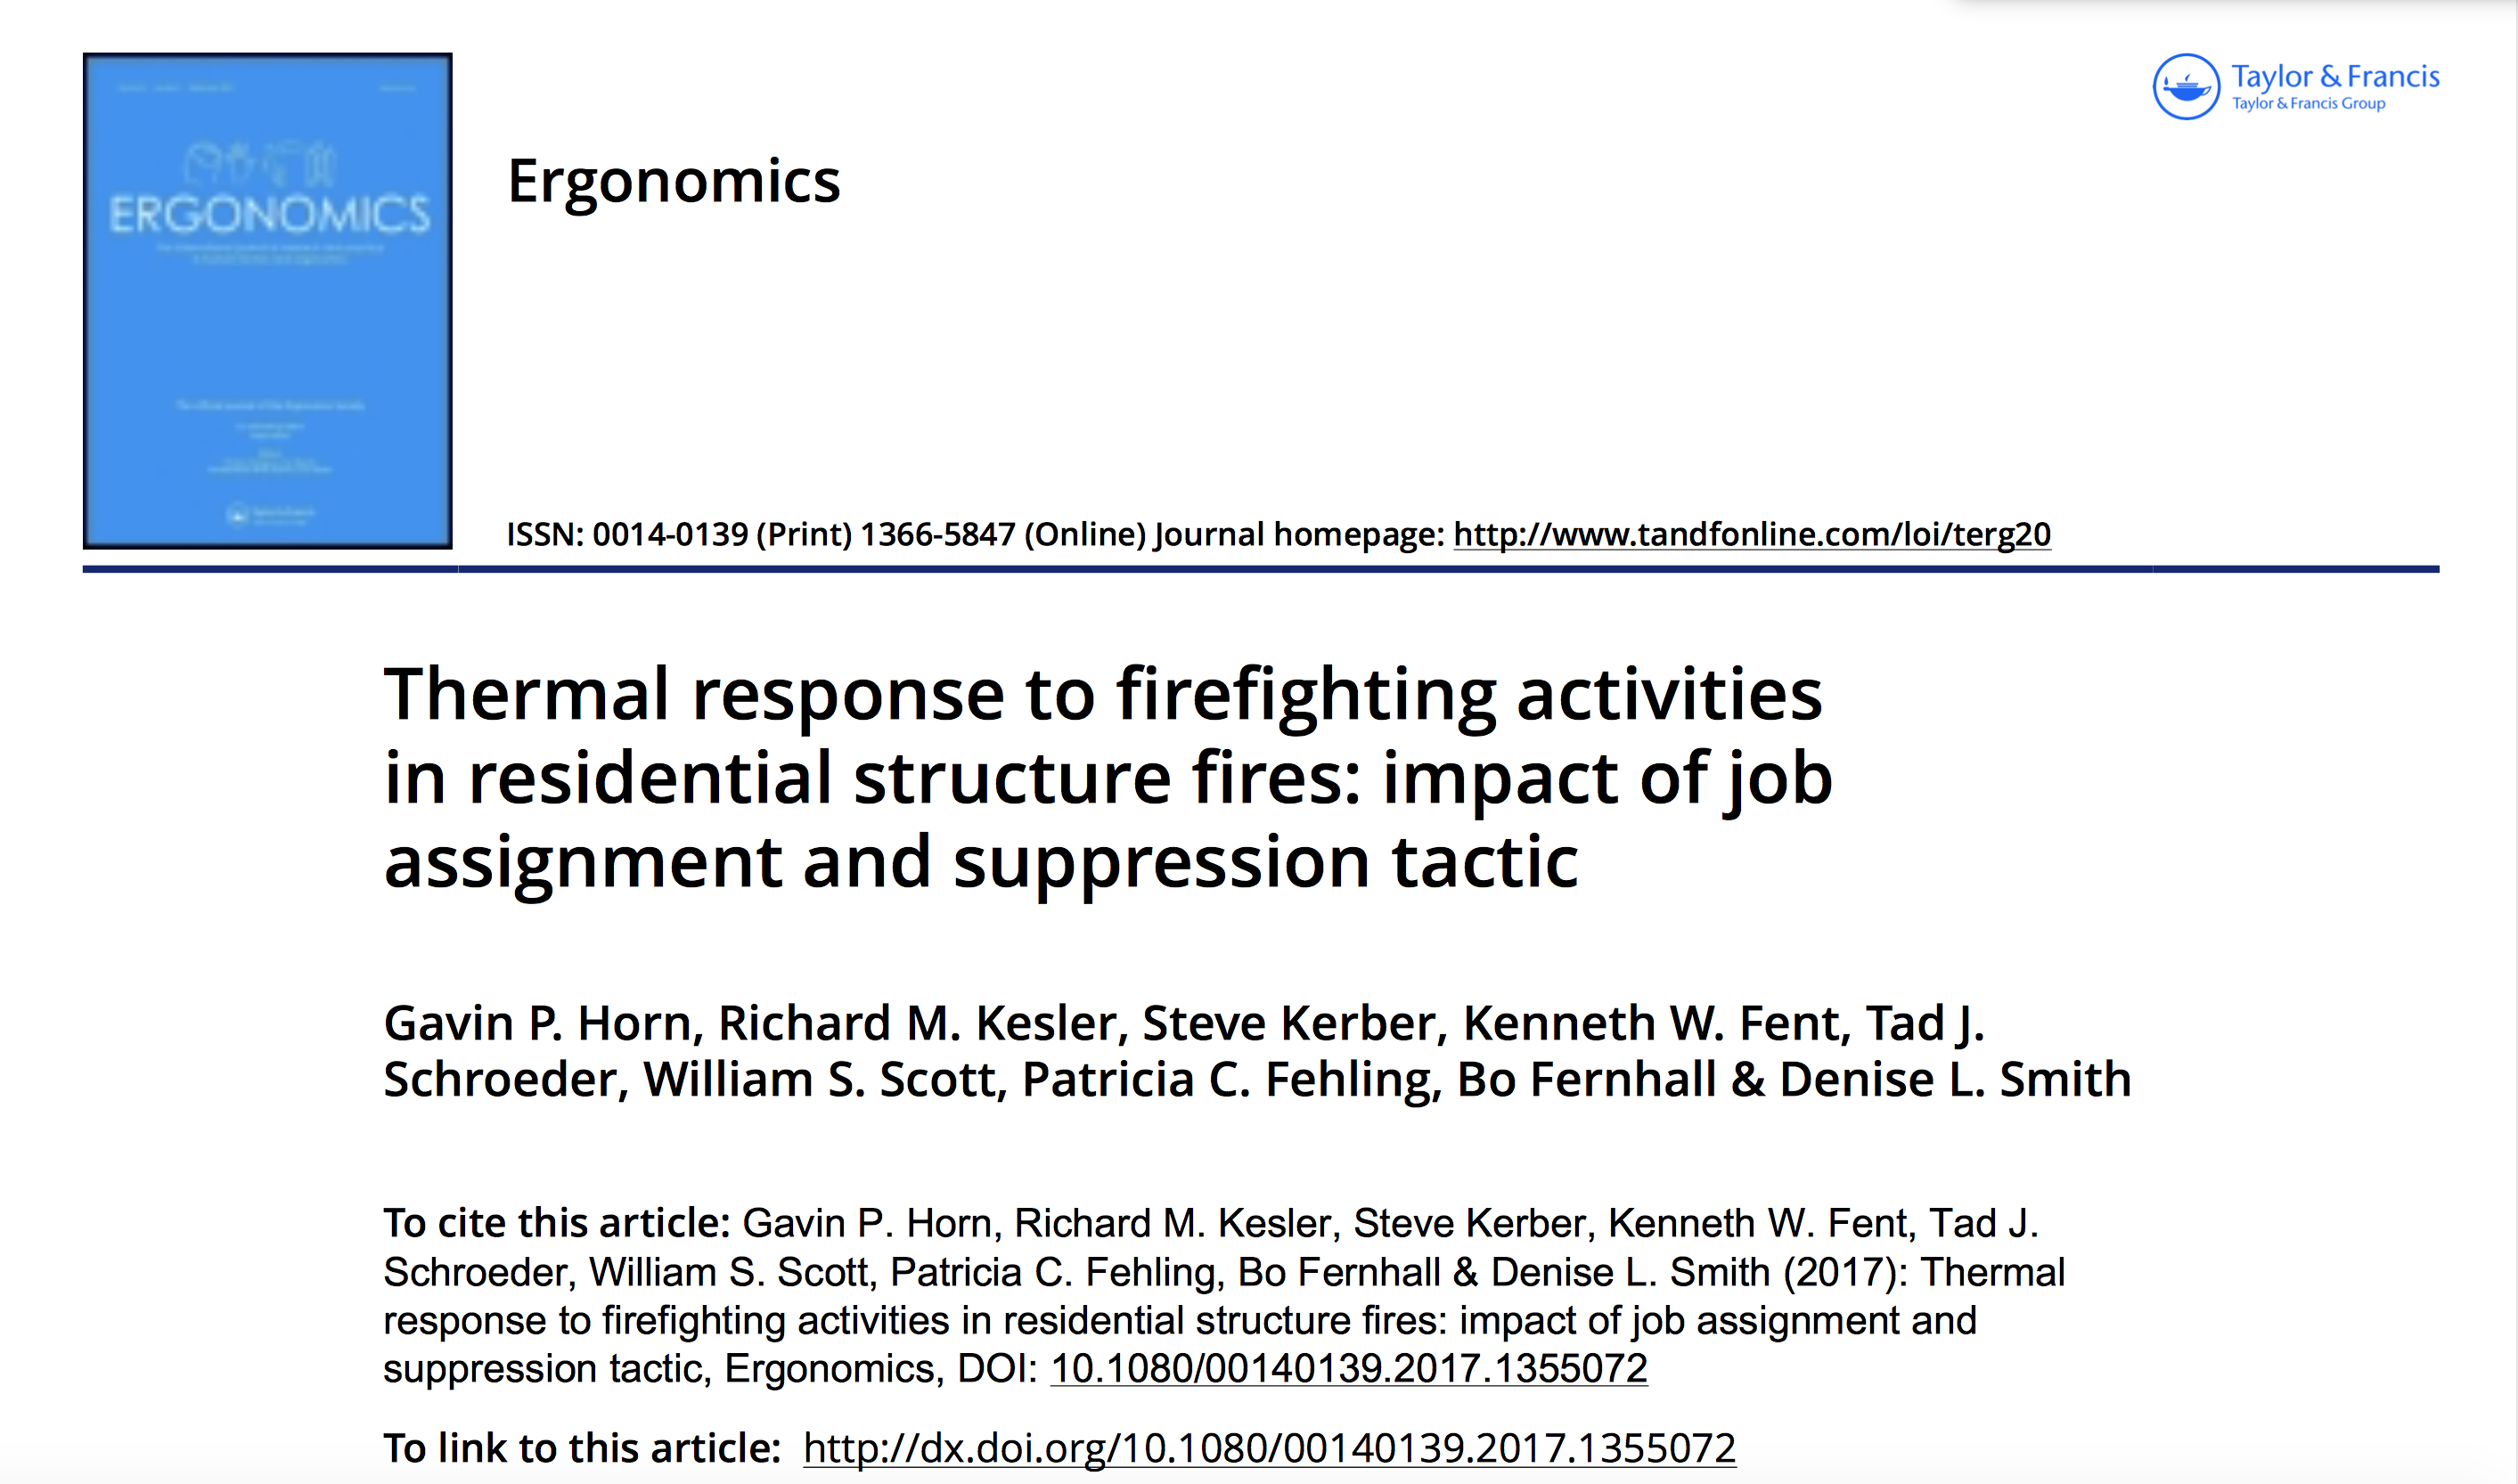 Peer-Reviewed Journal Article Discusses Firefighter Thermal Responses to Firefighting Activities in Residential Structure Fires